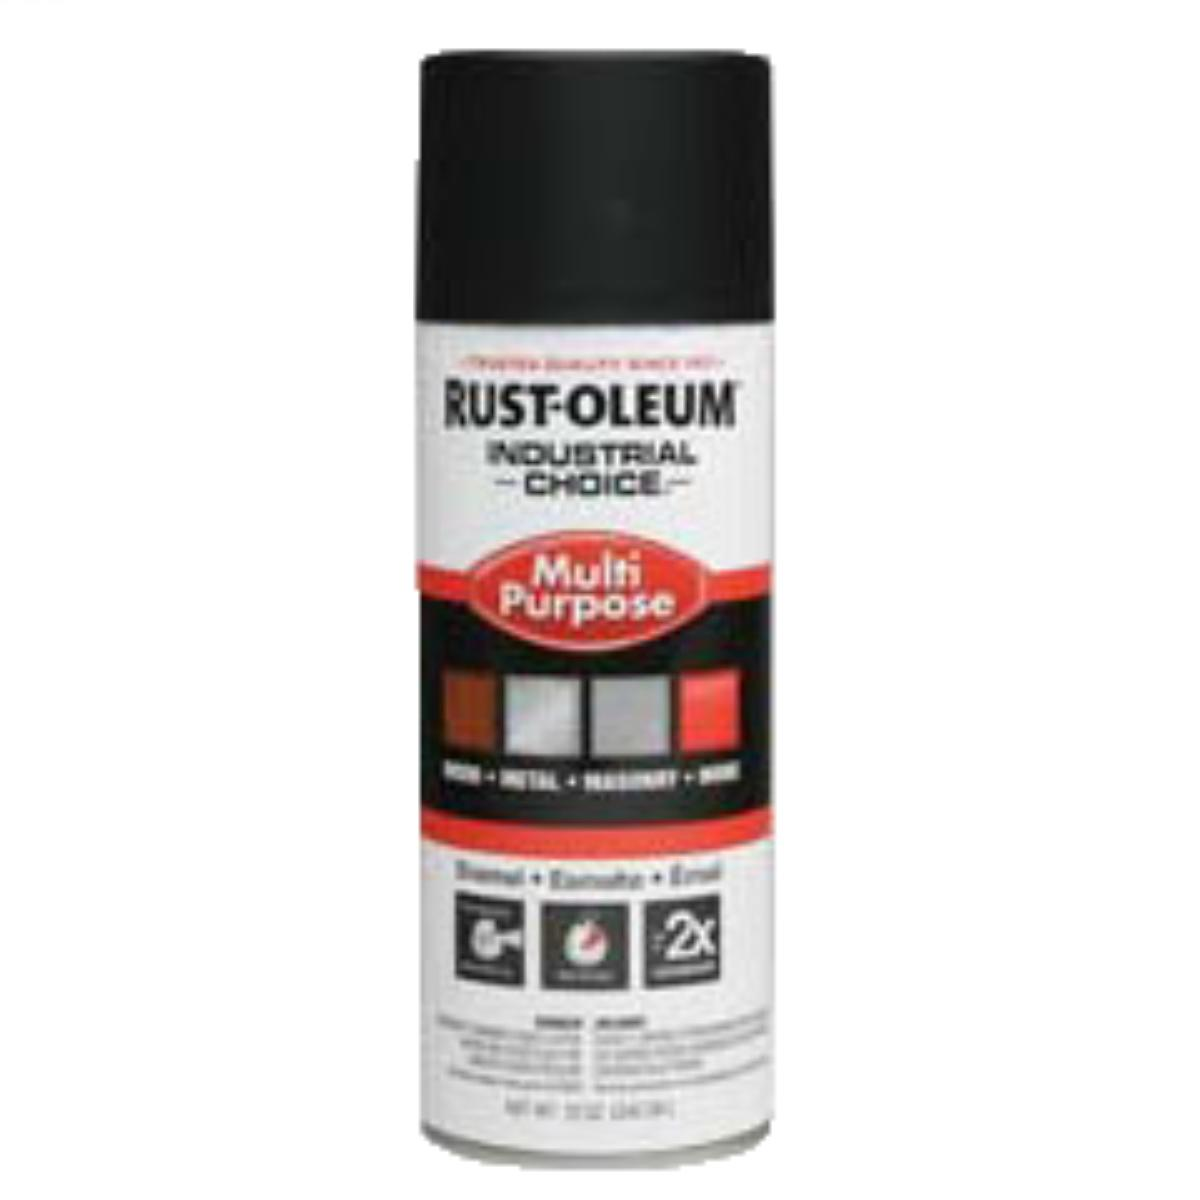 Rust-Oleum 1678830 Industrial Choice 1600 System Enamel Aerosols - Pack of 6